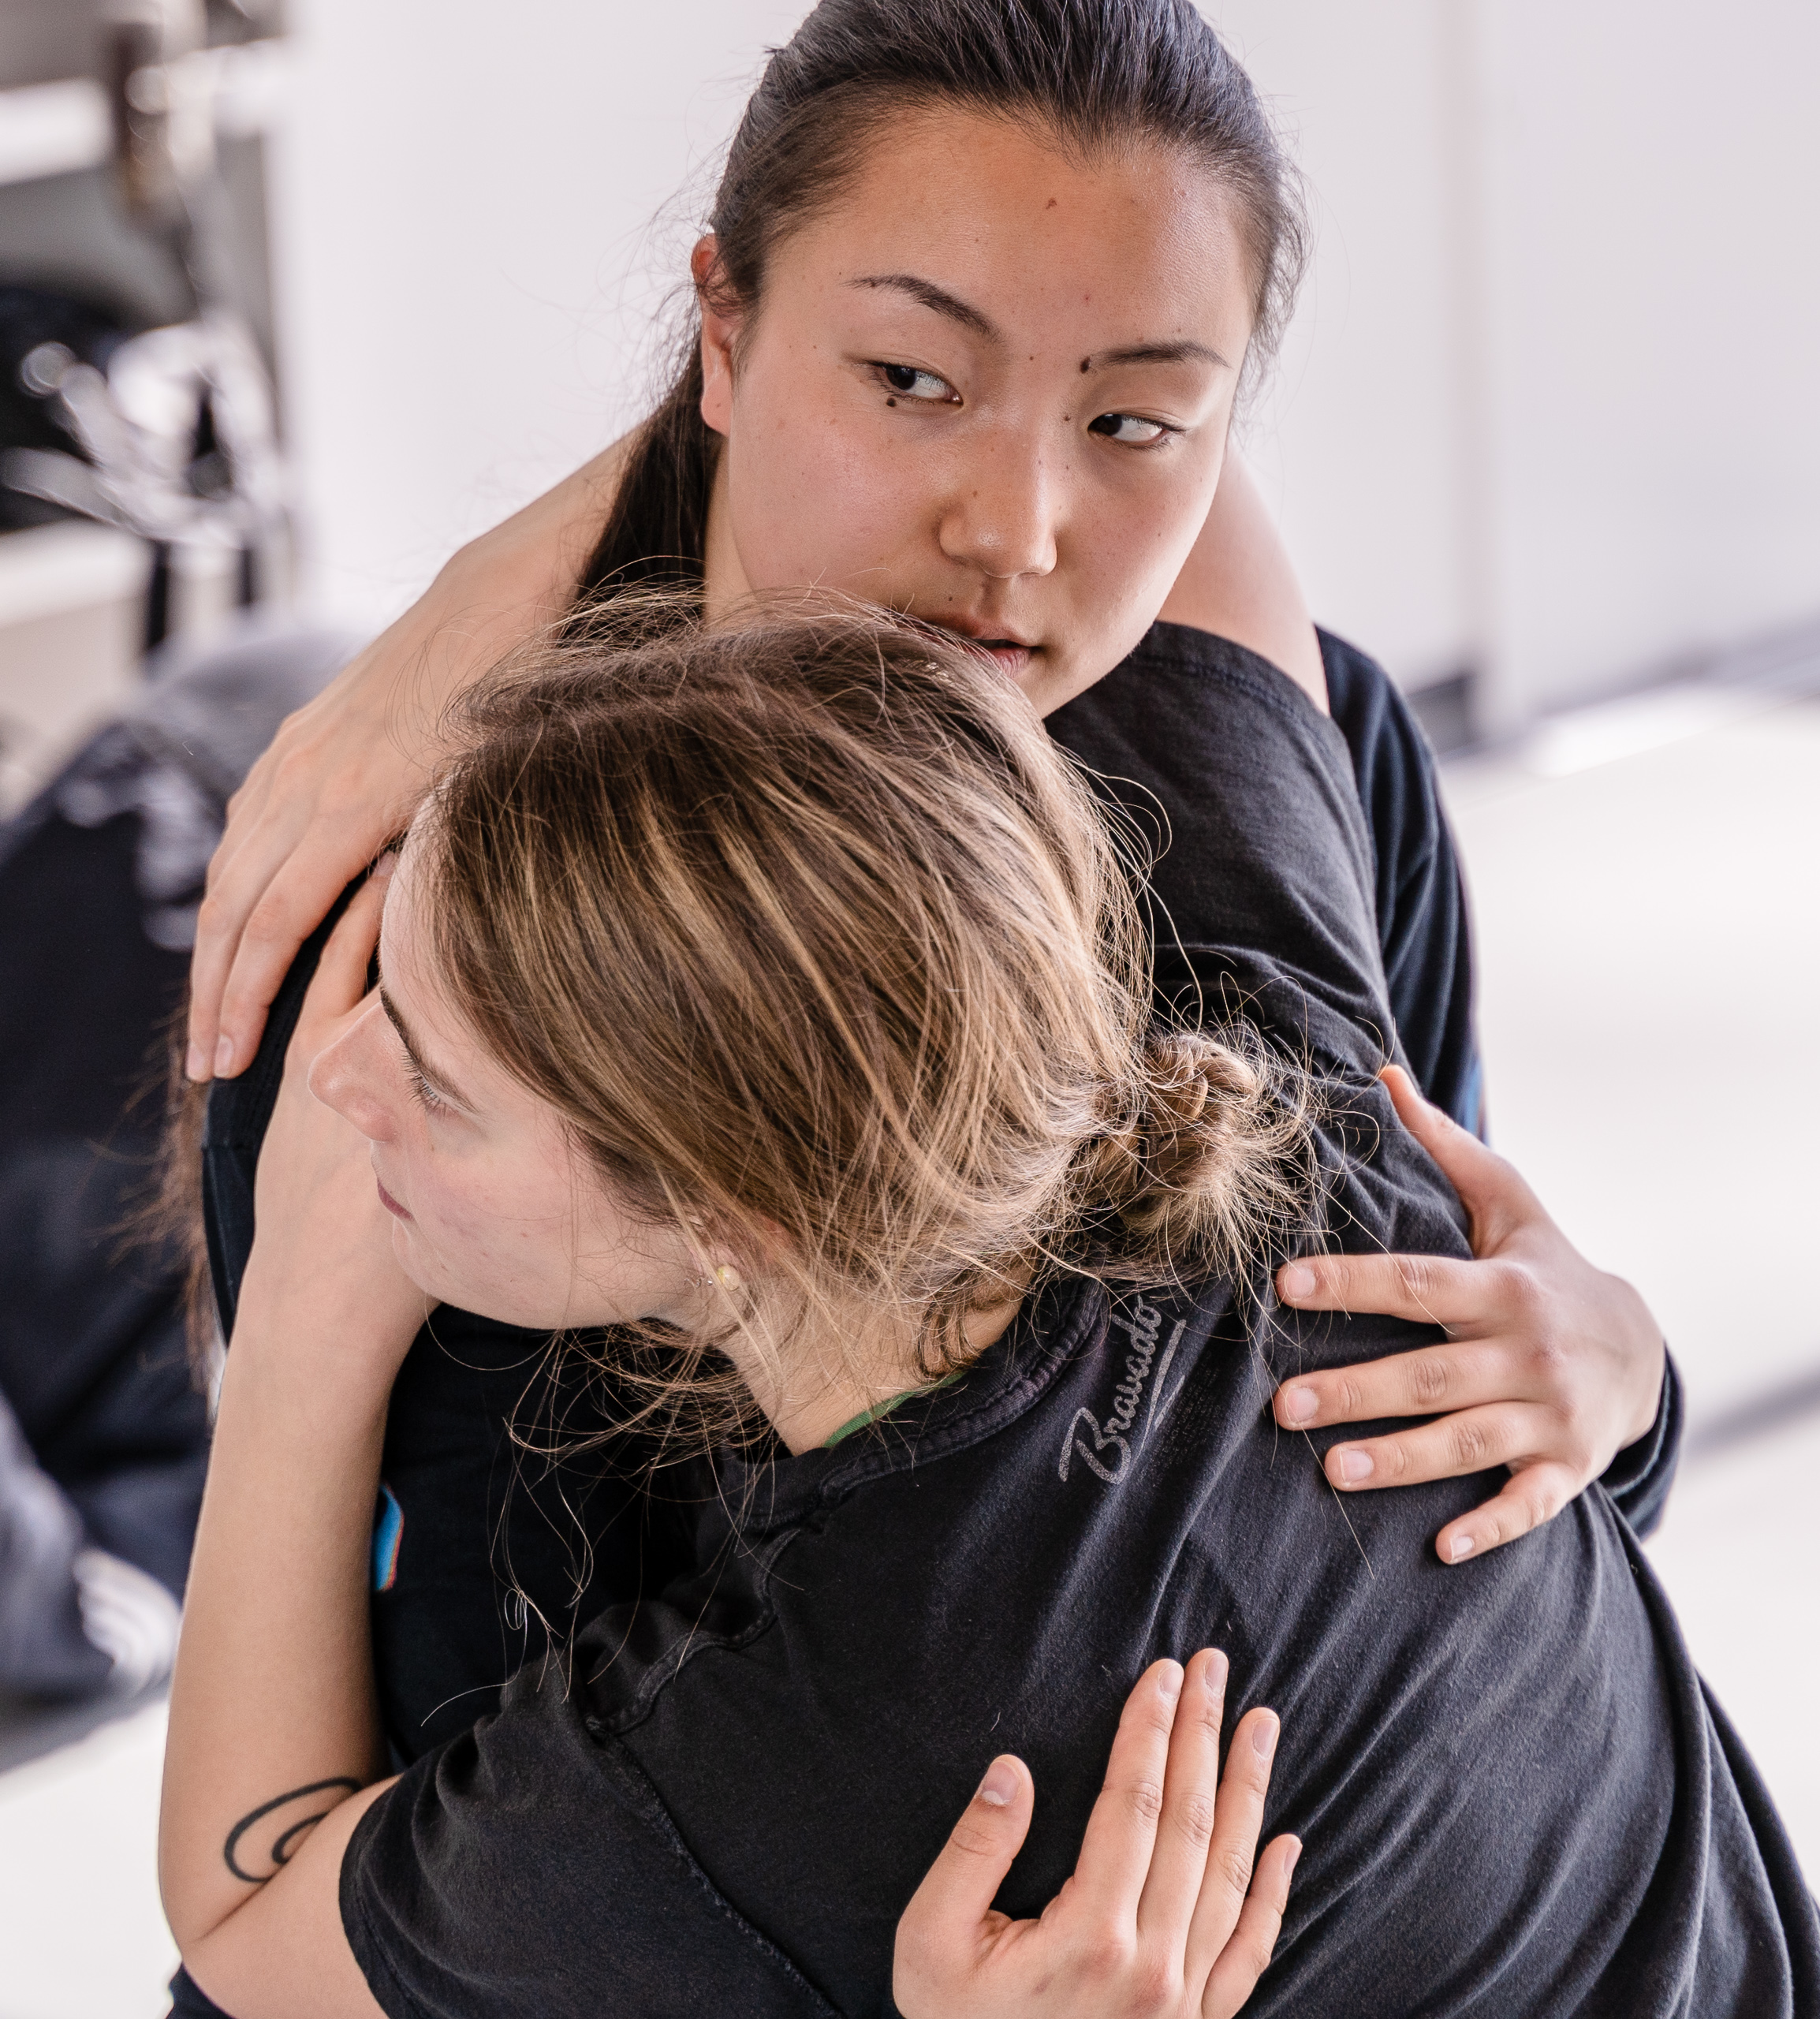 SMC student choreographer Aya Nakaguchi (top) works with Alyssa Fletcher (bottom) to fine tune a movement sequence in Nakaguchi's new, not-yet-titled work for Synapse Dance Theater during a rehearsal in the Core Performance Center (CPC) on Tuesday, April 2, 2019. Synapse Dance Theater will be presented on Friday and Saturday, May 24 and 25, on the SMC Broad Stage at the Performing Arts Complex (PAC) (Glenn Zucman/The Corsair)